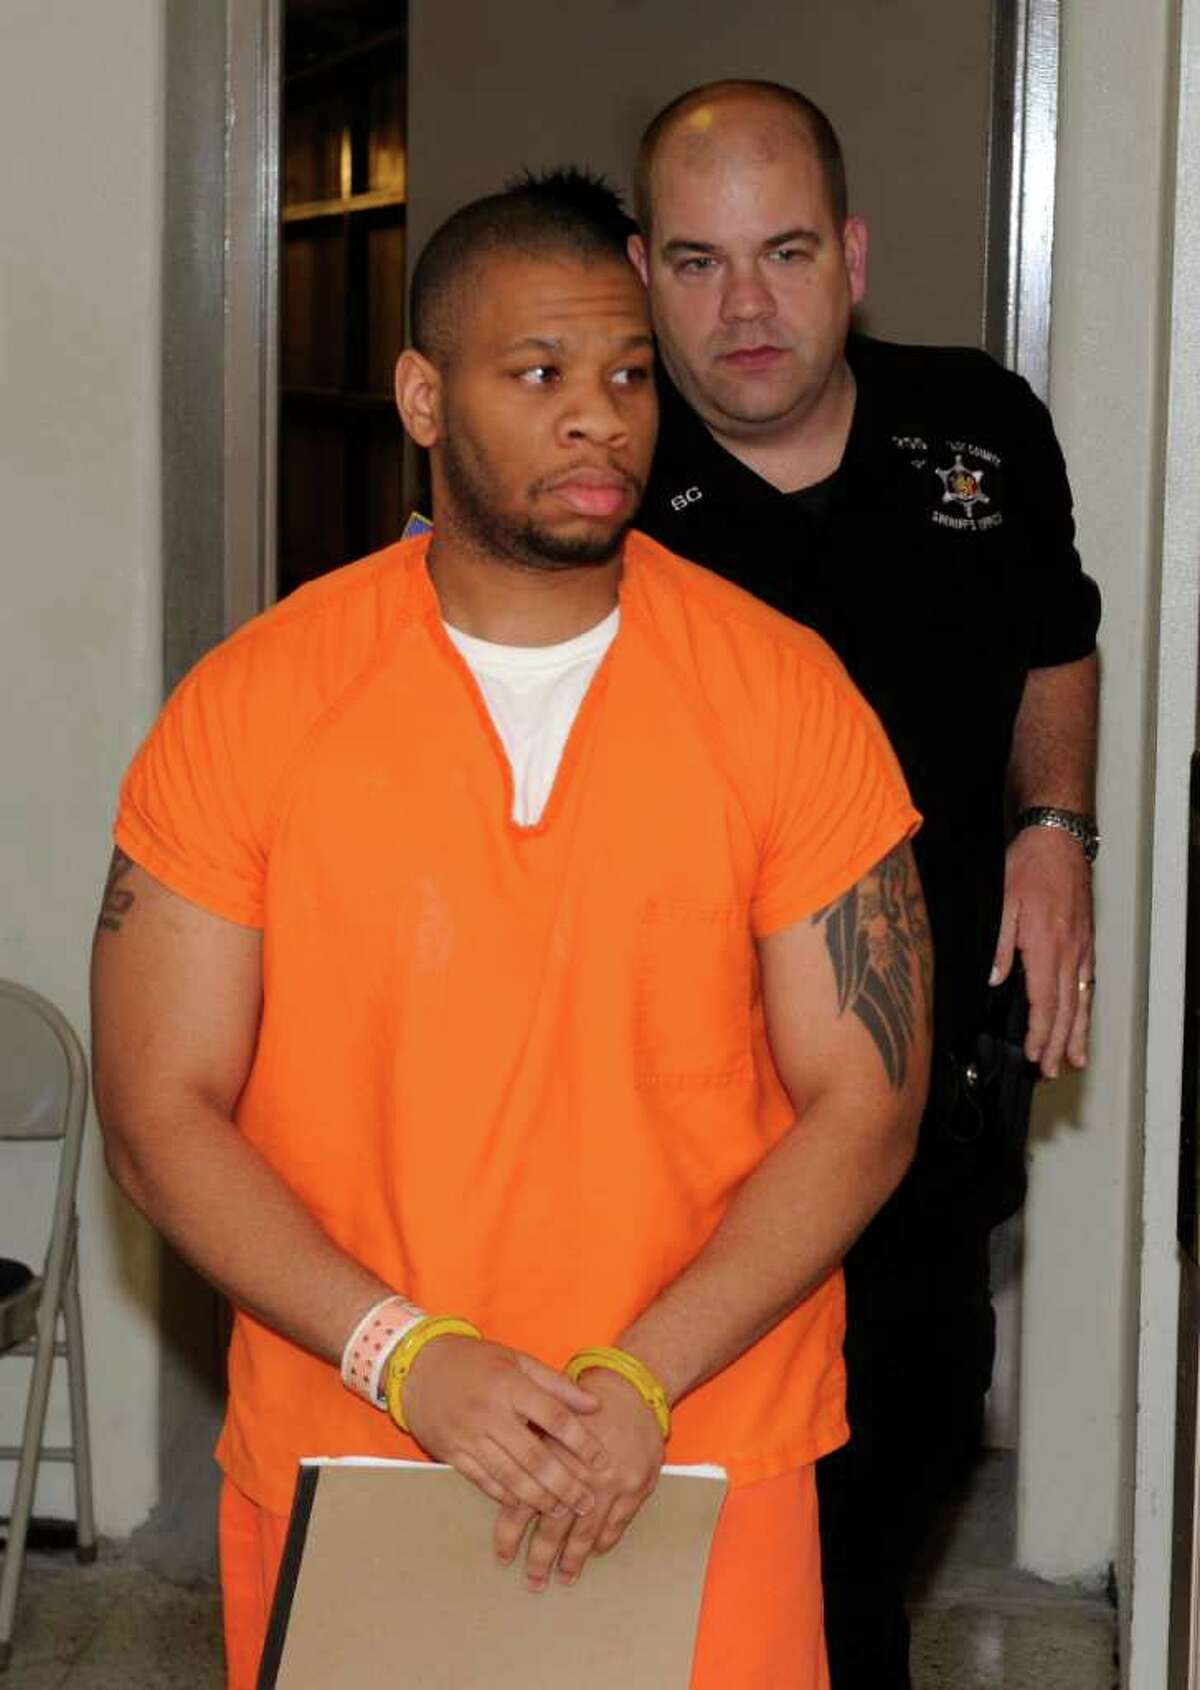 Raymond Van Clief is brought to court at the Schenectady County Courthouse for his sentencing on a manslaughter conviction for killing his ex-wife's boyfriend last year. (Skip Dickstein / Times Union)